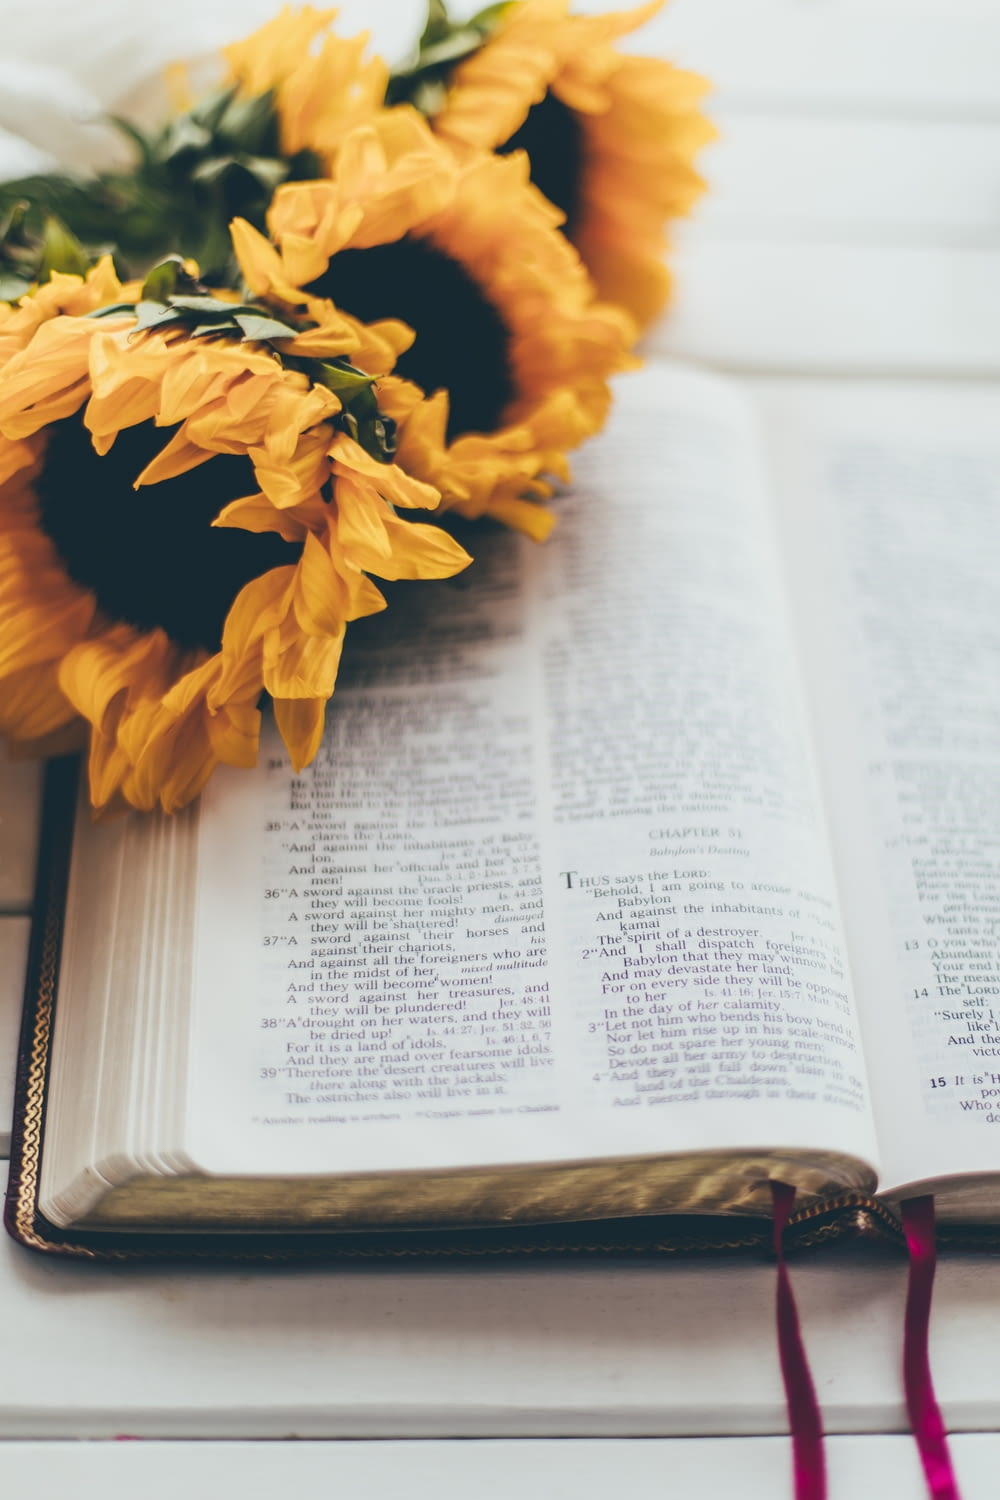 yellow flower on book page